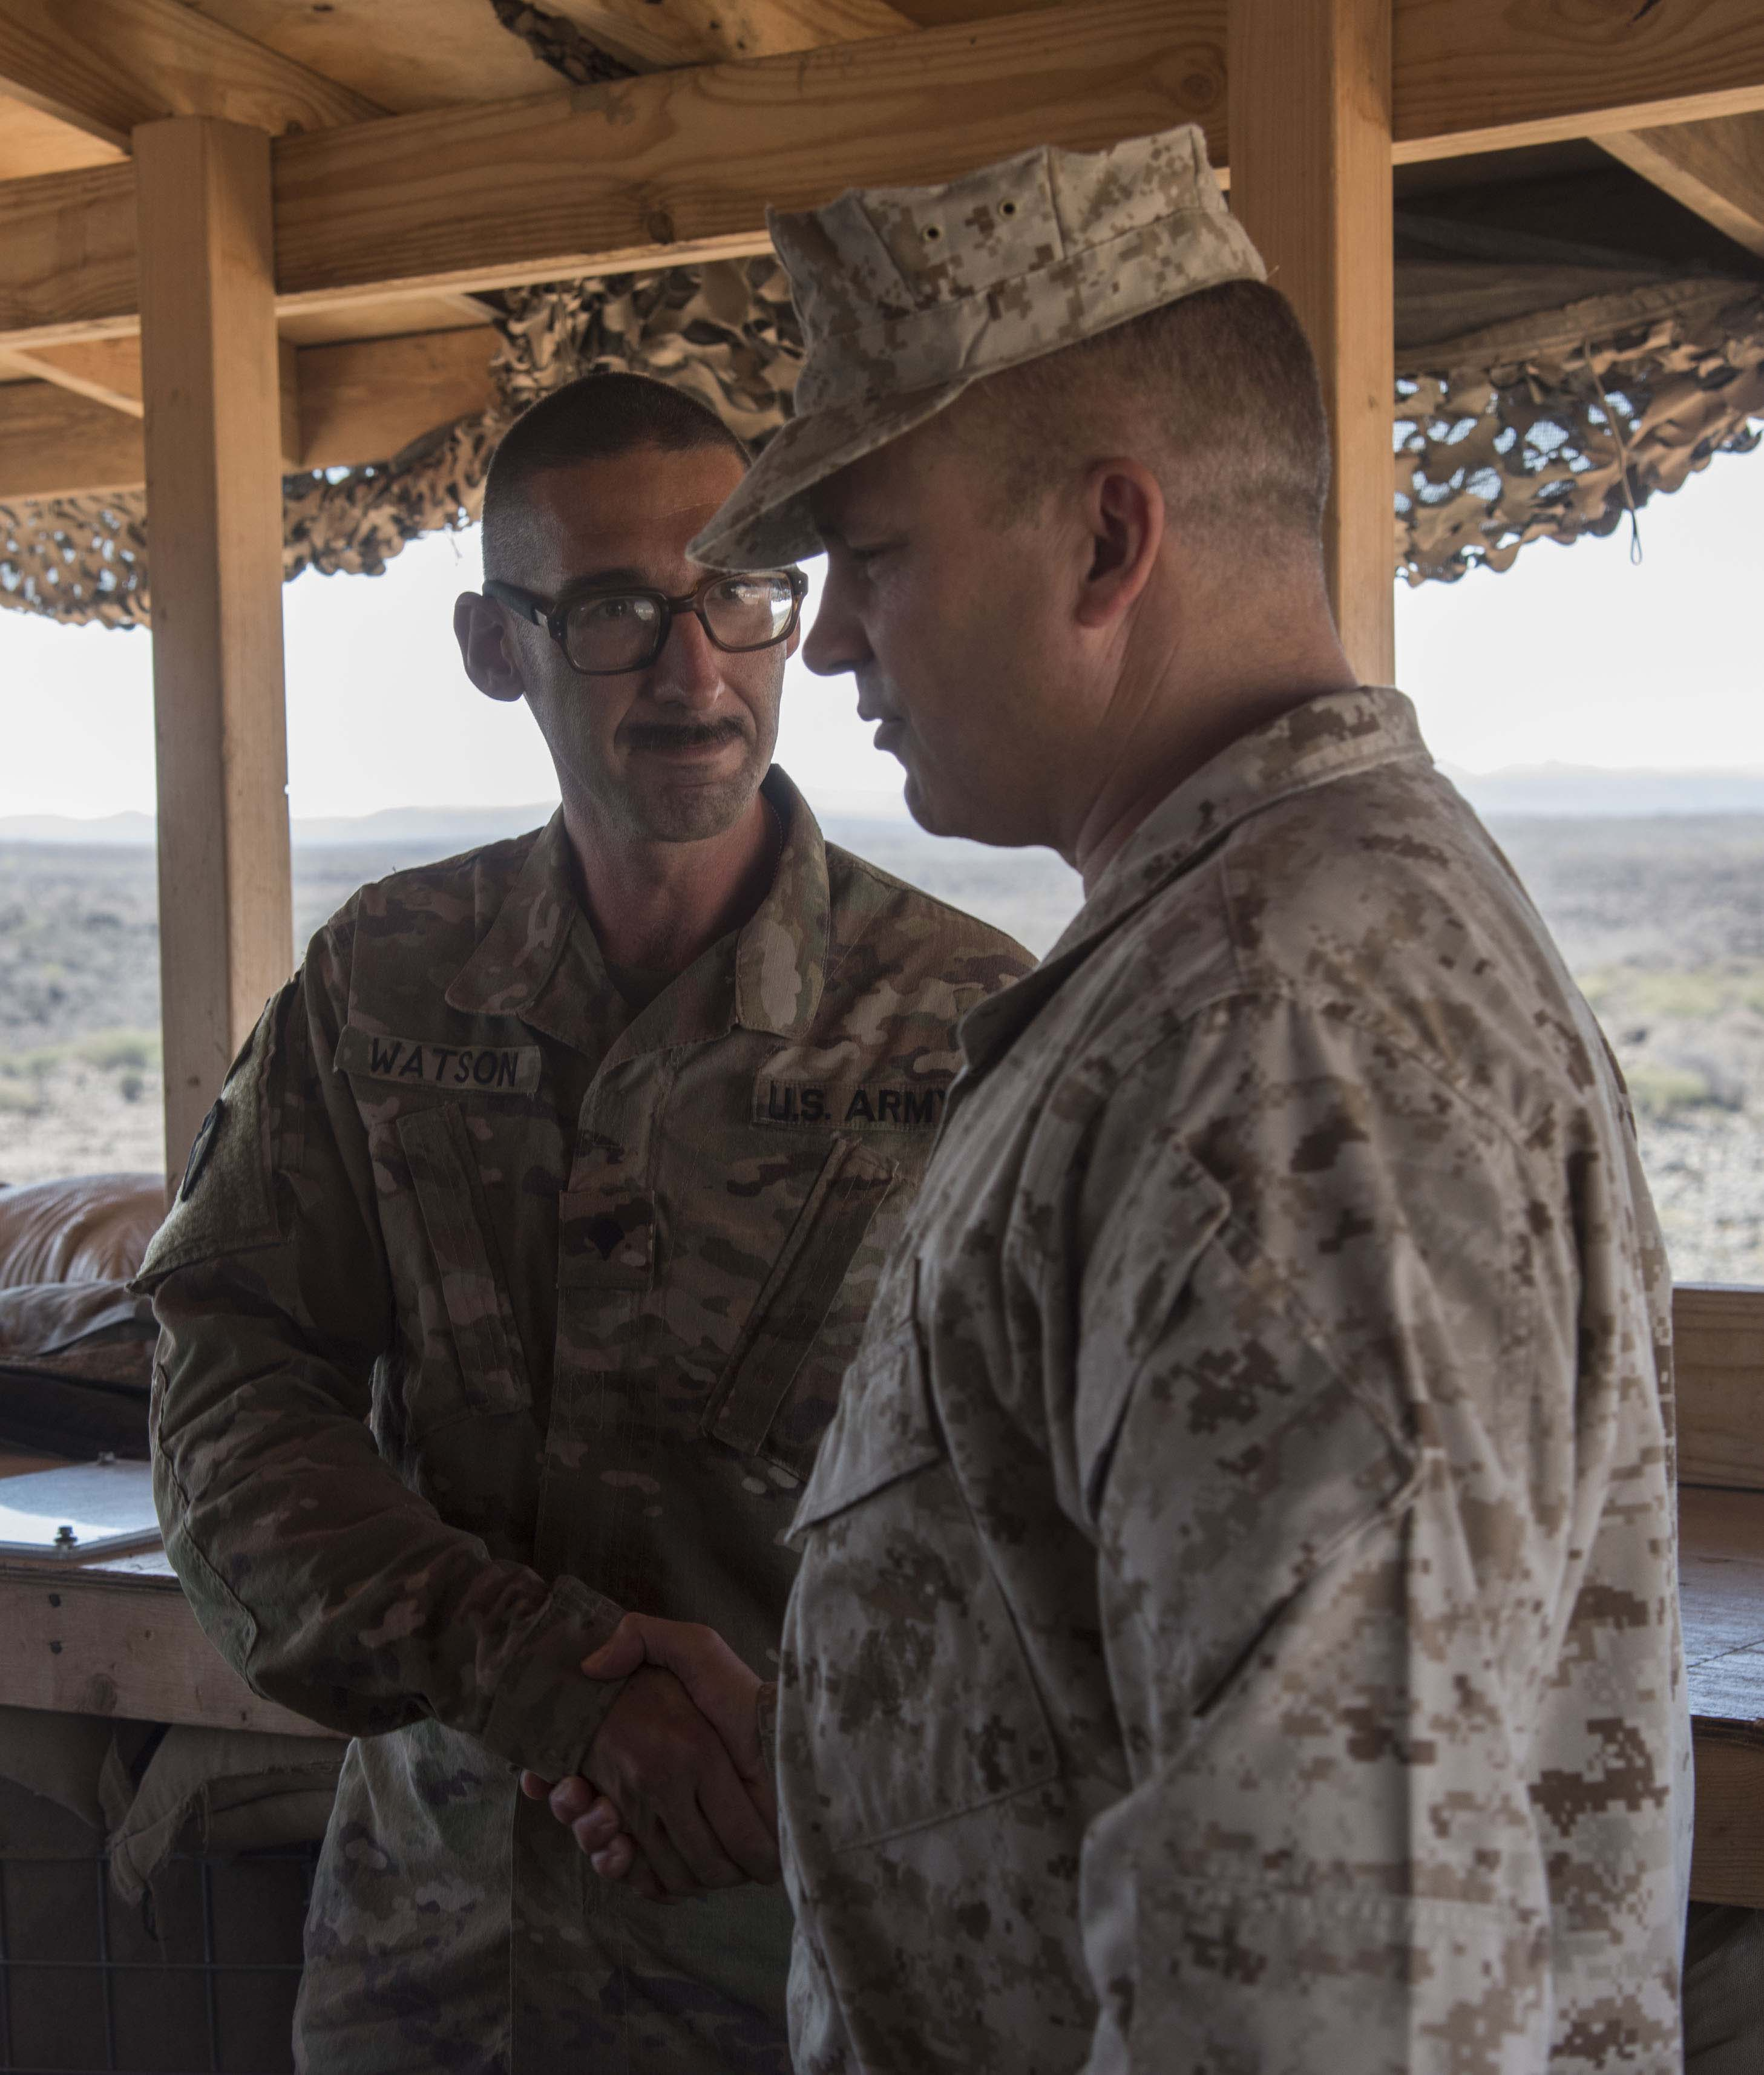 U.S. Army Specialist Douglas L. Watson, Jr., with the 3rd Battalion, 144th Infantry Regiment, assigned to Task Force Bayonet, Combined Joint Task Force - Horn of Africa, shakes hands with U.S. Marine Corps Brig. Gen. David J. Furness, commander of CJTF-HOA, in Chebelley, Djibouti, Dec. 25, 2017.  Furness spent the afternoon  meeting with service members and thanking them for their continued service and sacrifice throughout the holiday season. (U.S. Air National Guard photo by Staff Sgt. Allyson L. Manners)